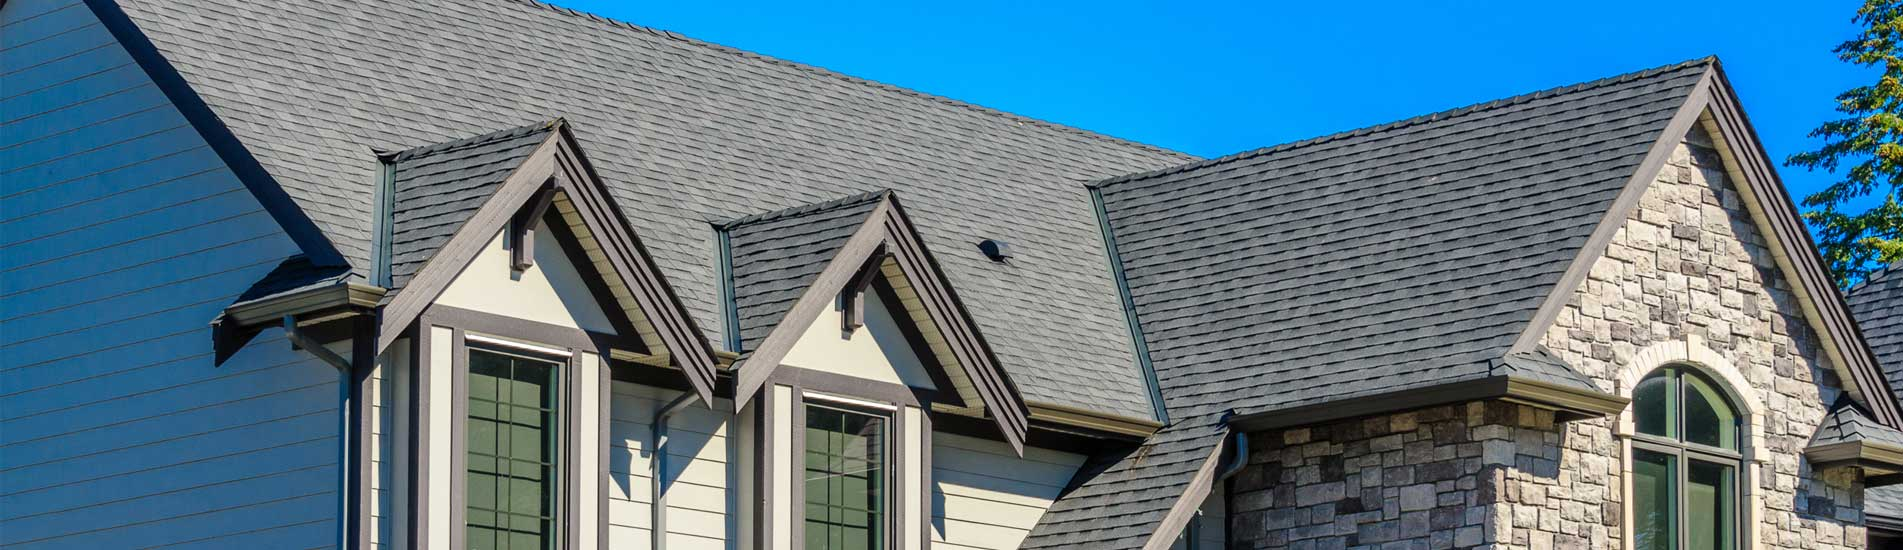 roofing company from Glenview il